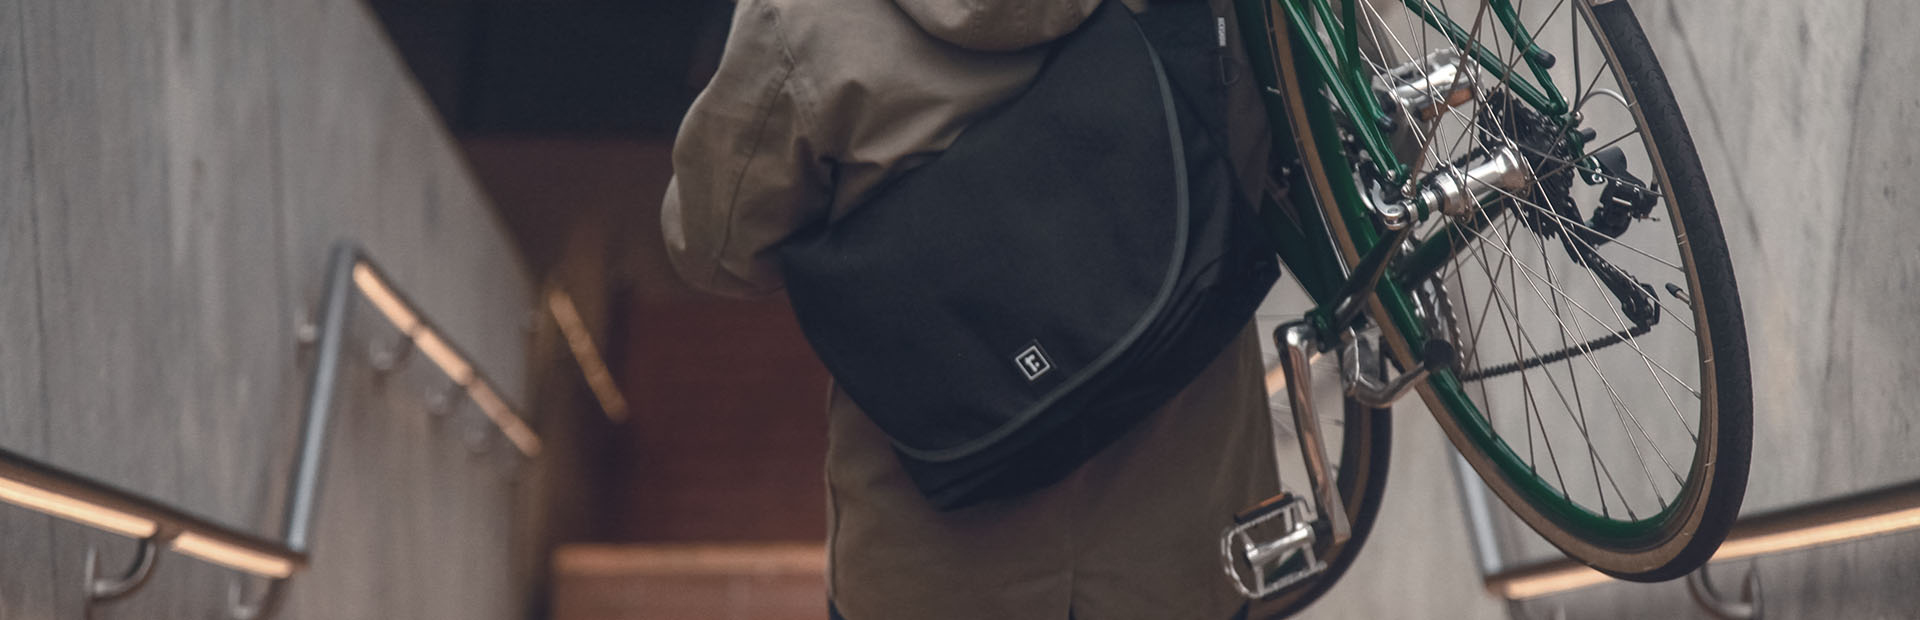 Medium Zero Messenger Bag